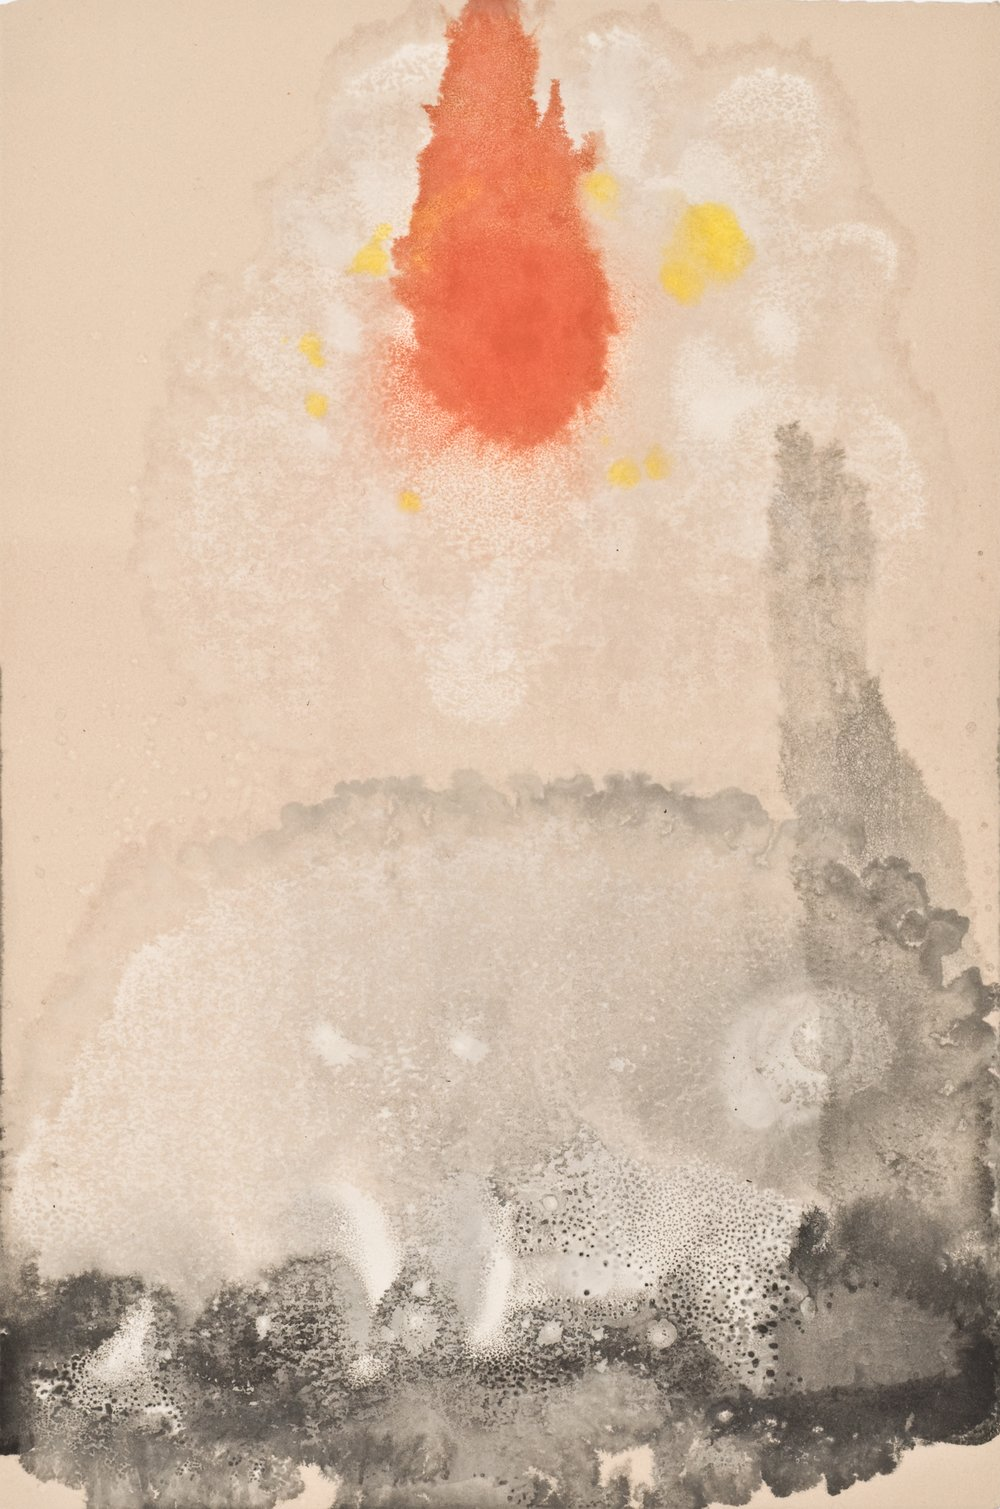 Untitled 22 , 2012  Oil on paper monotype  18 x 12 inches  Wildwood Press